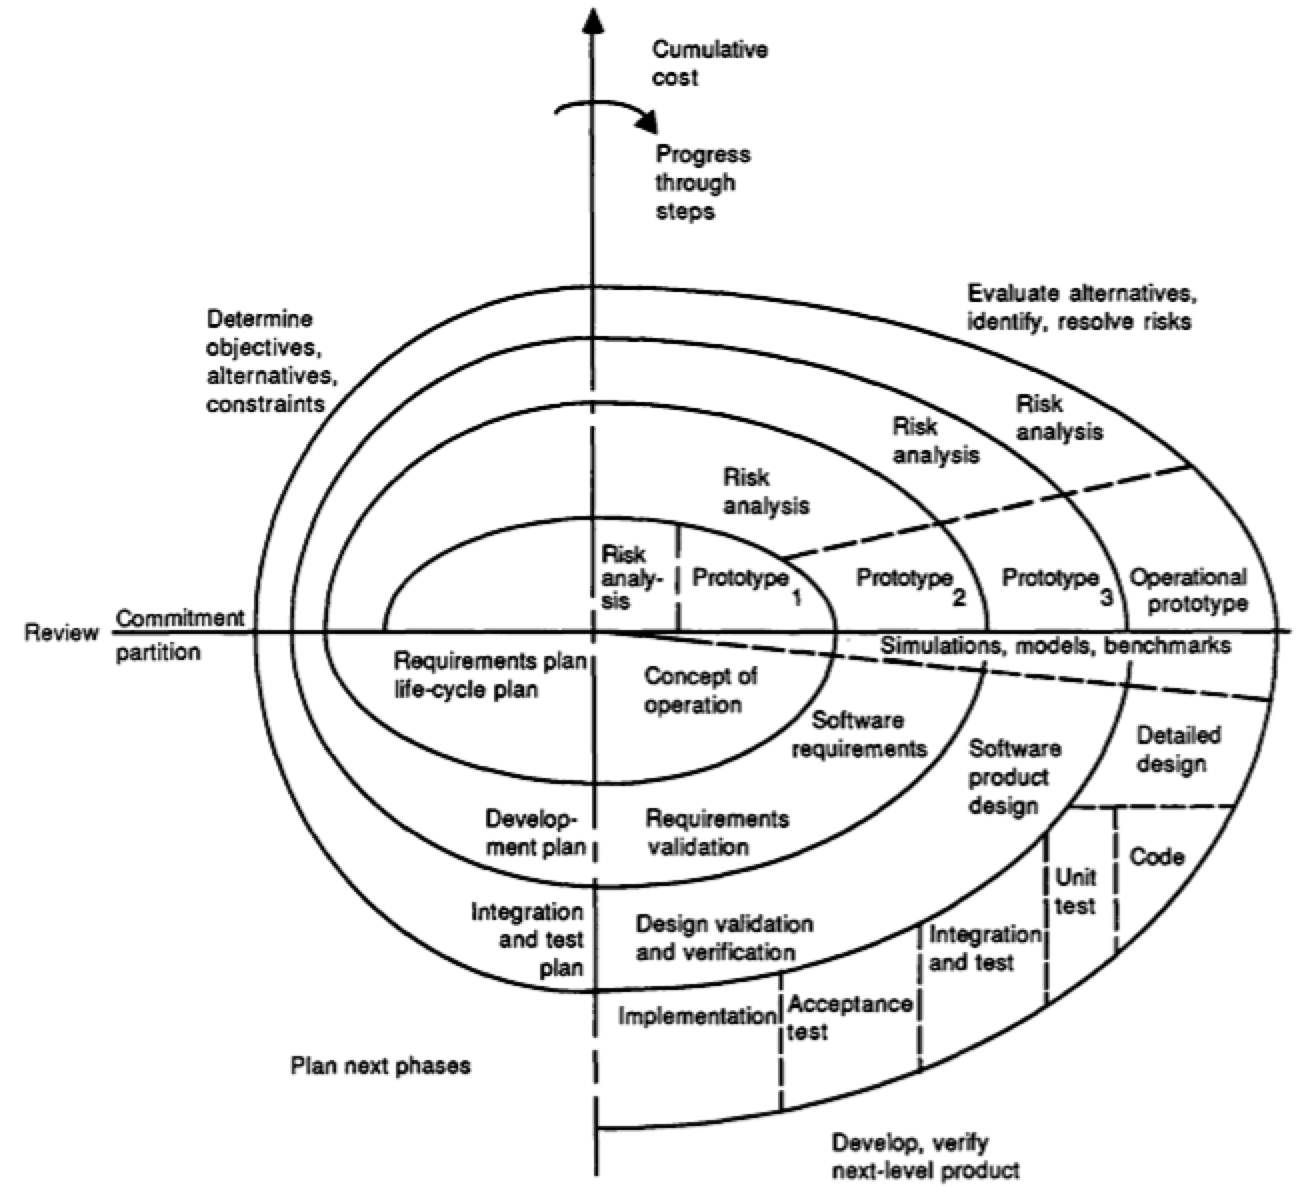 What are the 4 sectors in each loop in Boehm's spiral model?